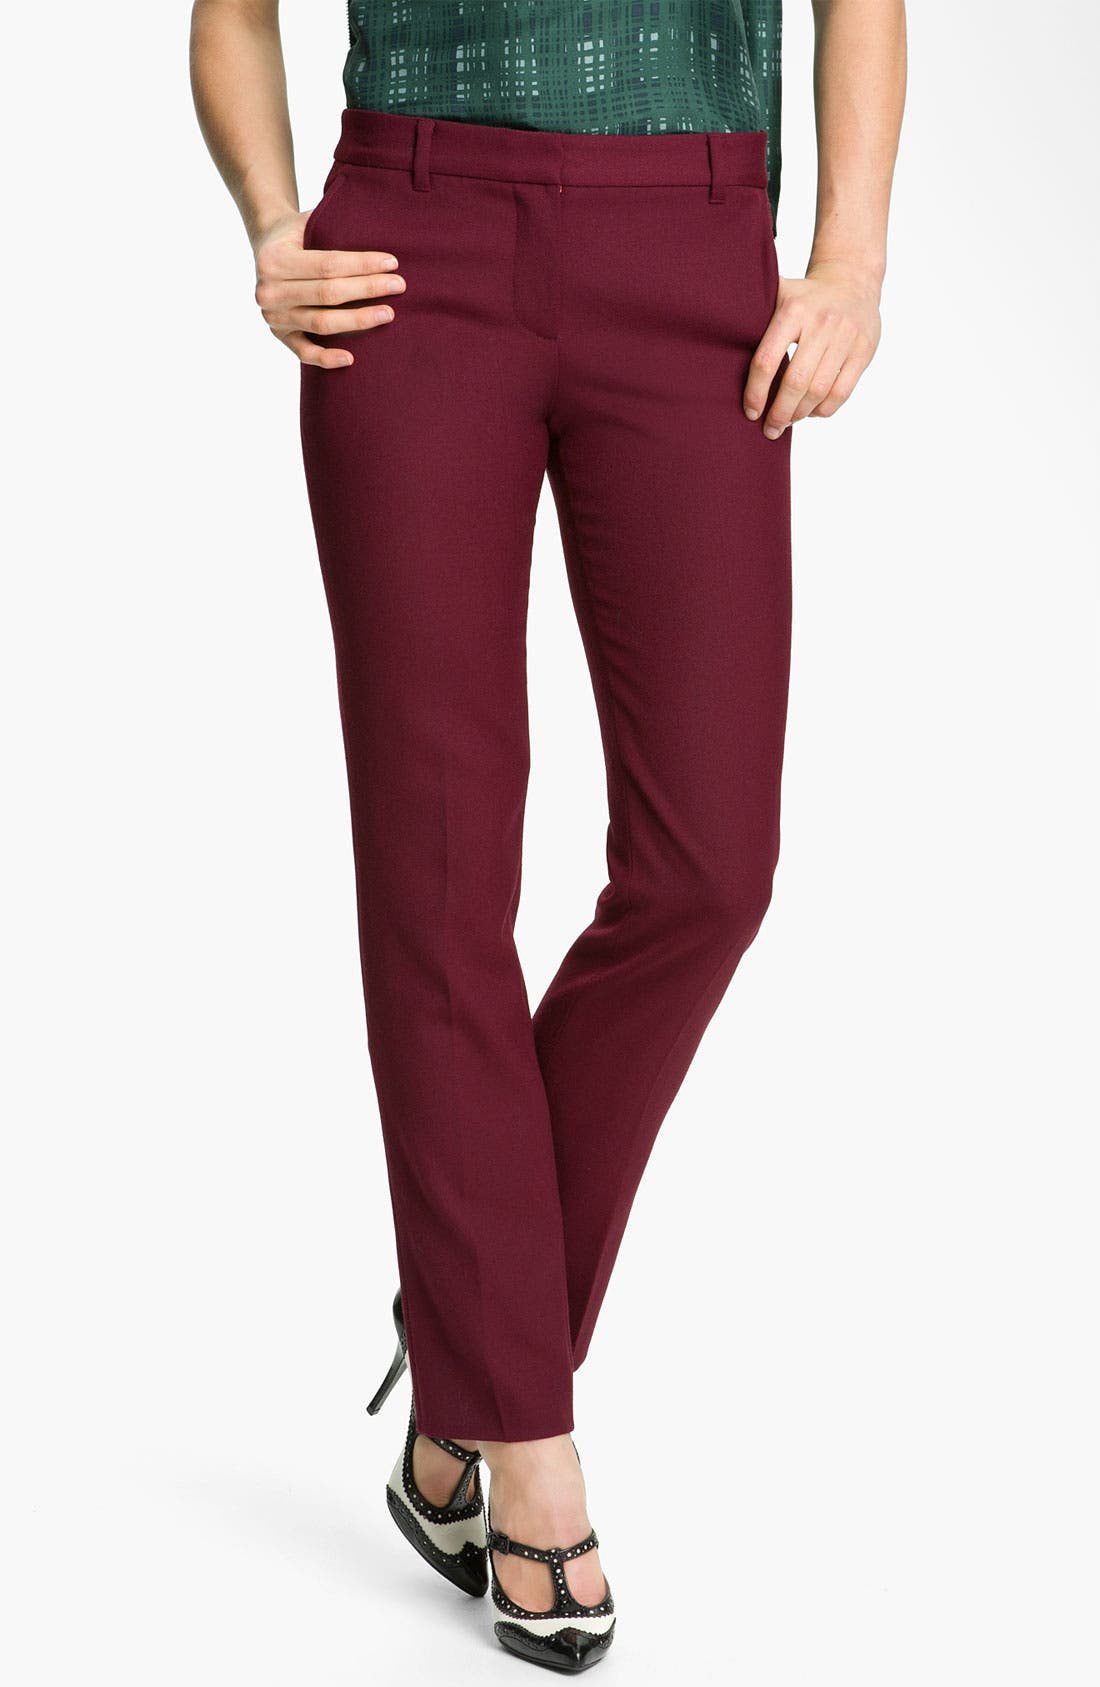 Alternate Image 1 Selected - Tory Burch 'Celeste' Pants